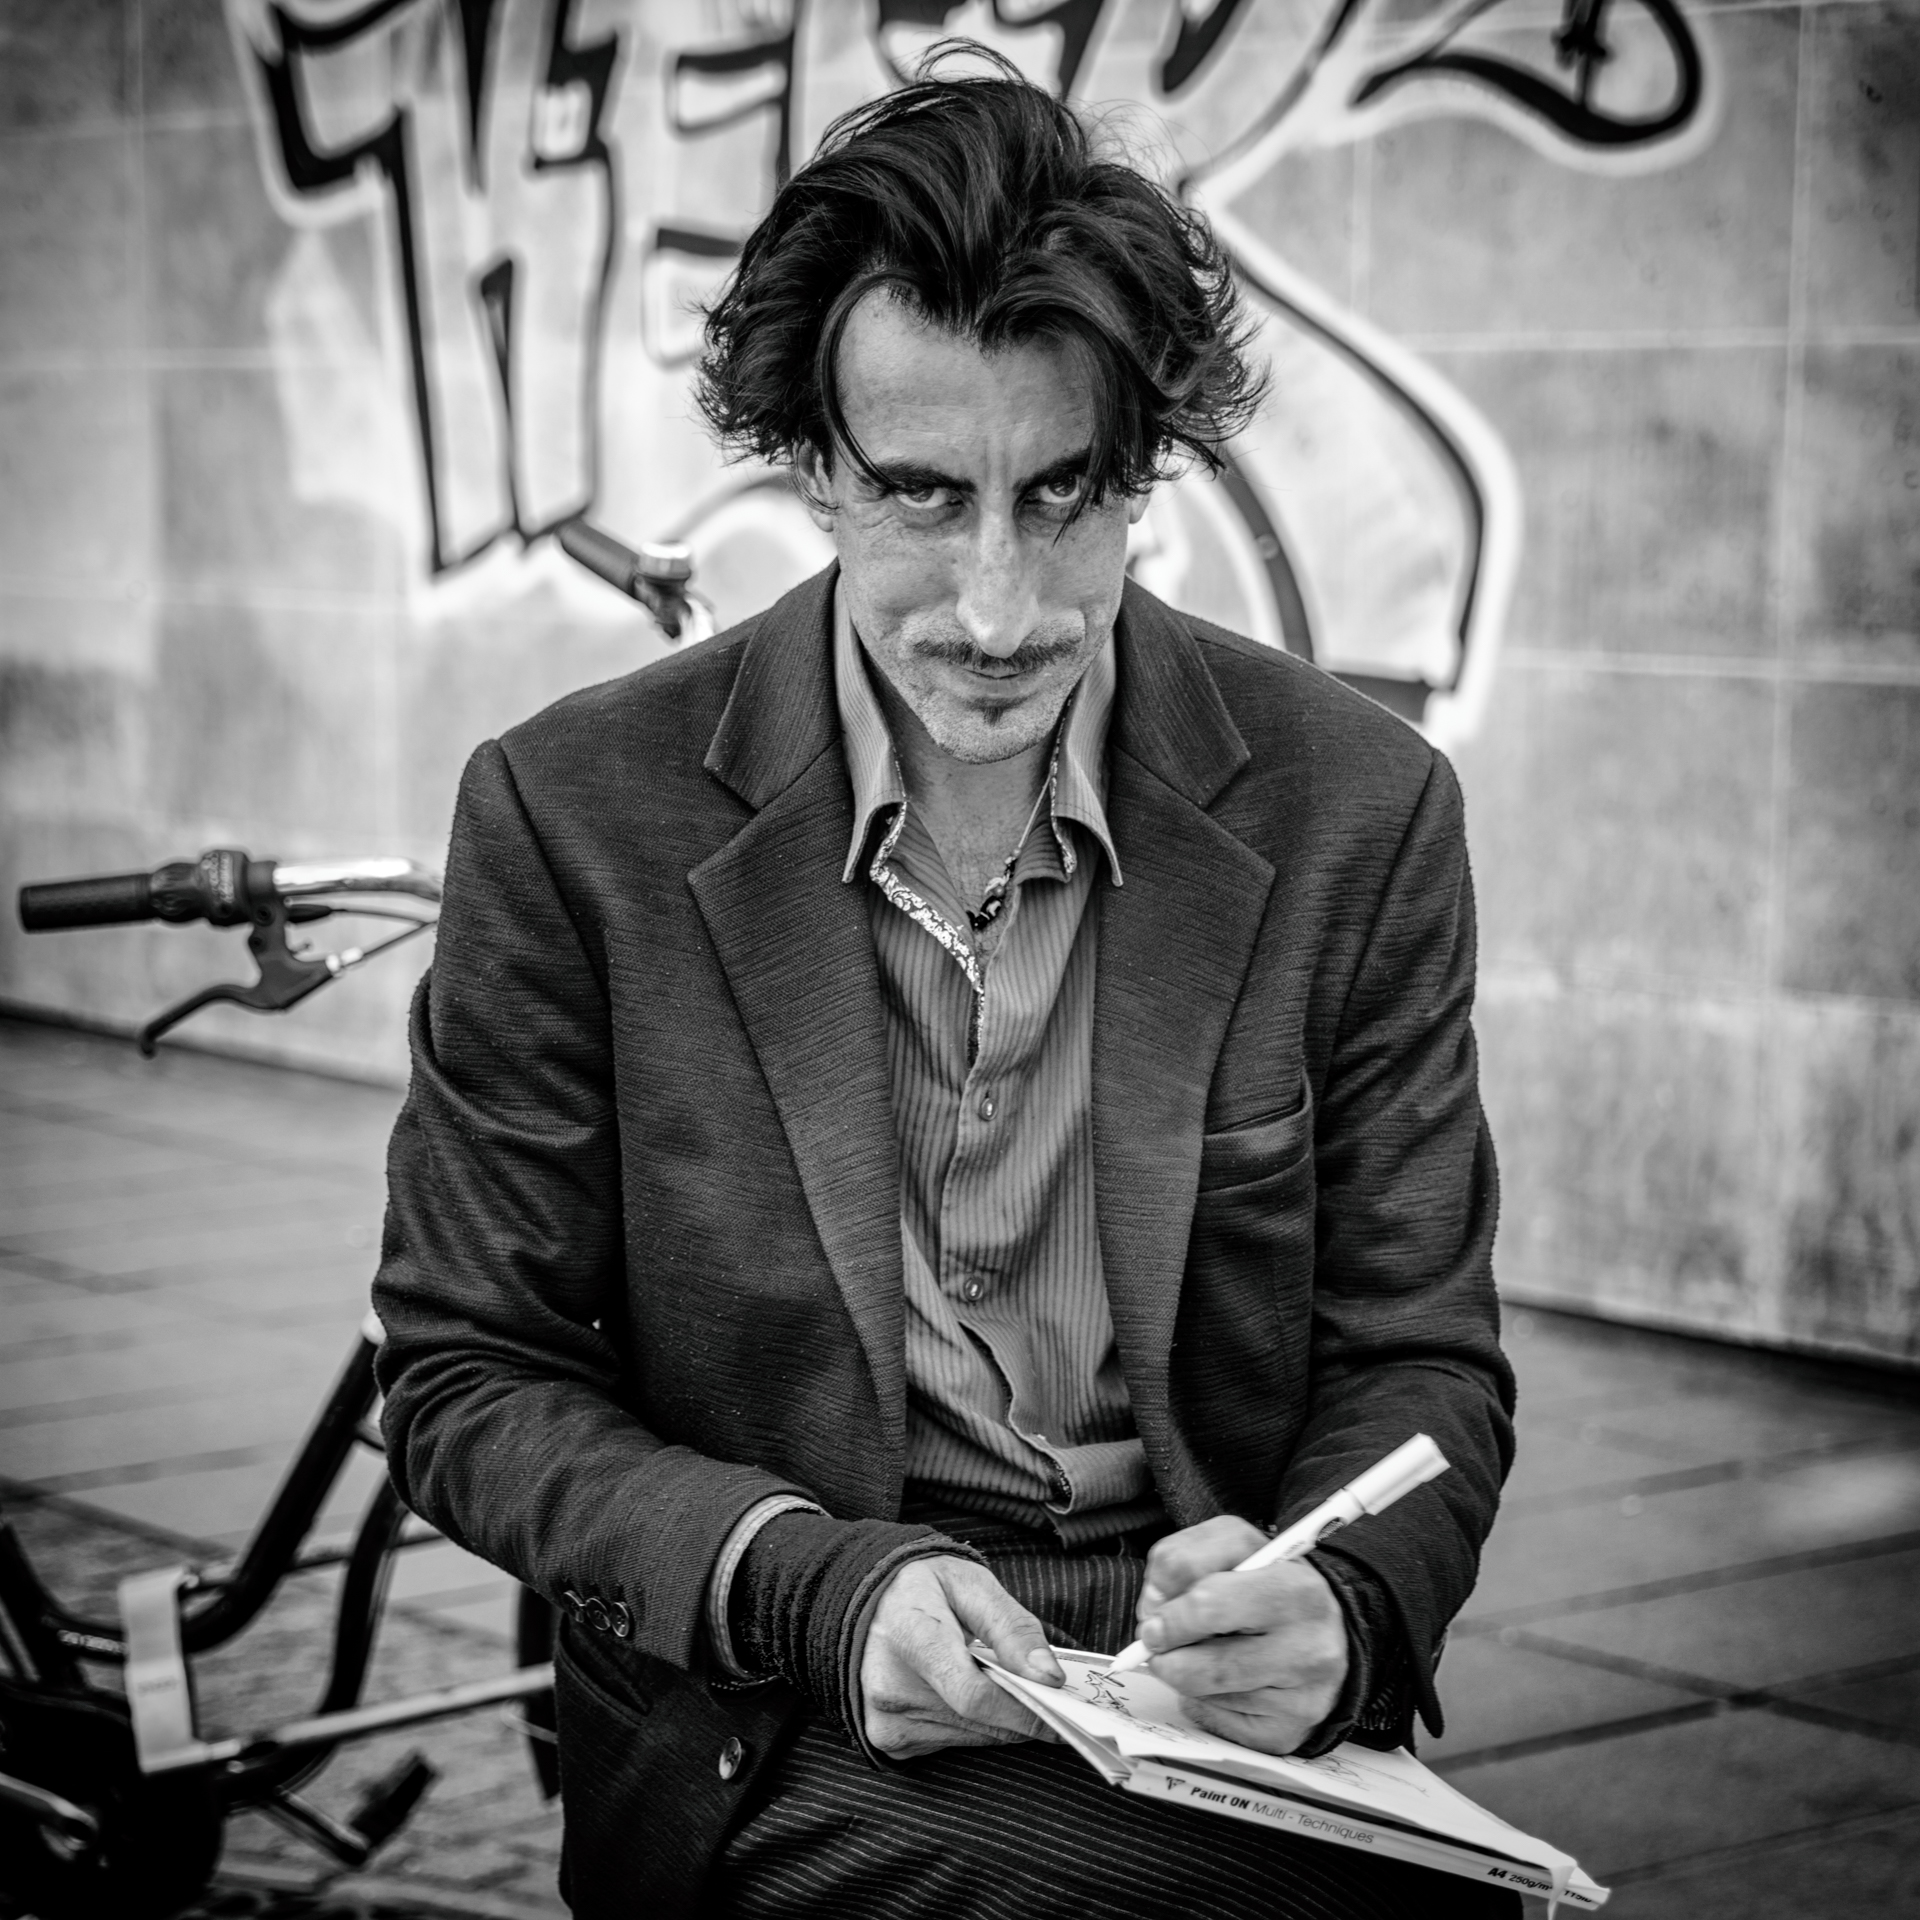 Street photography - L'artiste en n&b